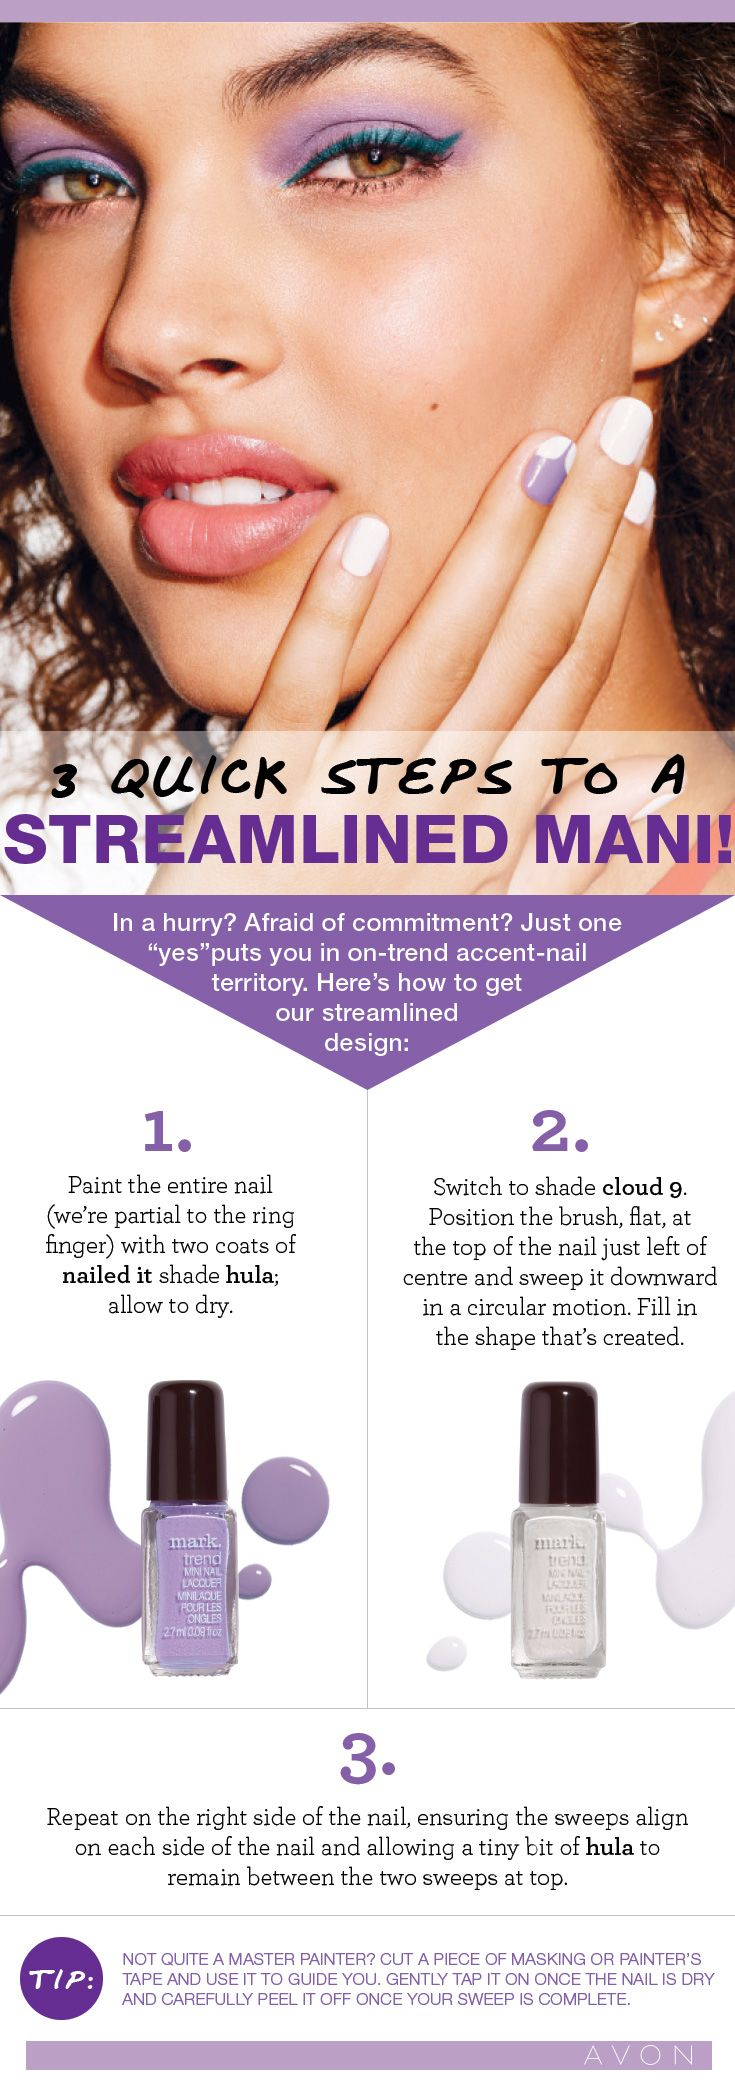 Check out this #MarkCanada polish pairing for a quick DIY accent nail this #ManiMonday